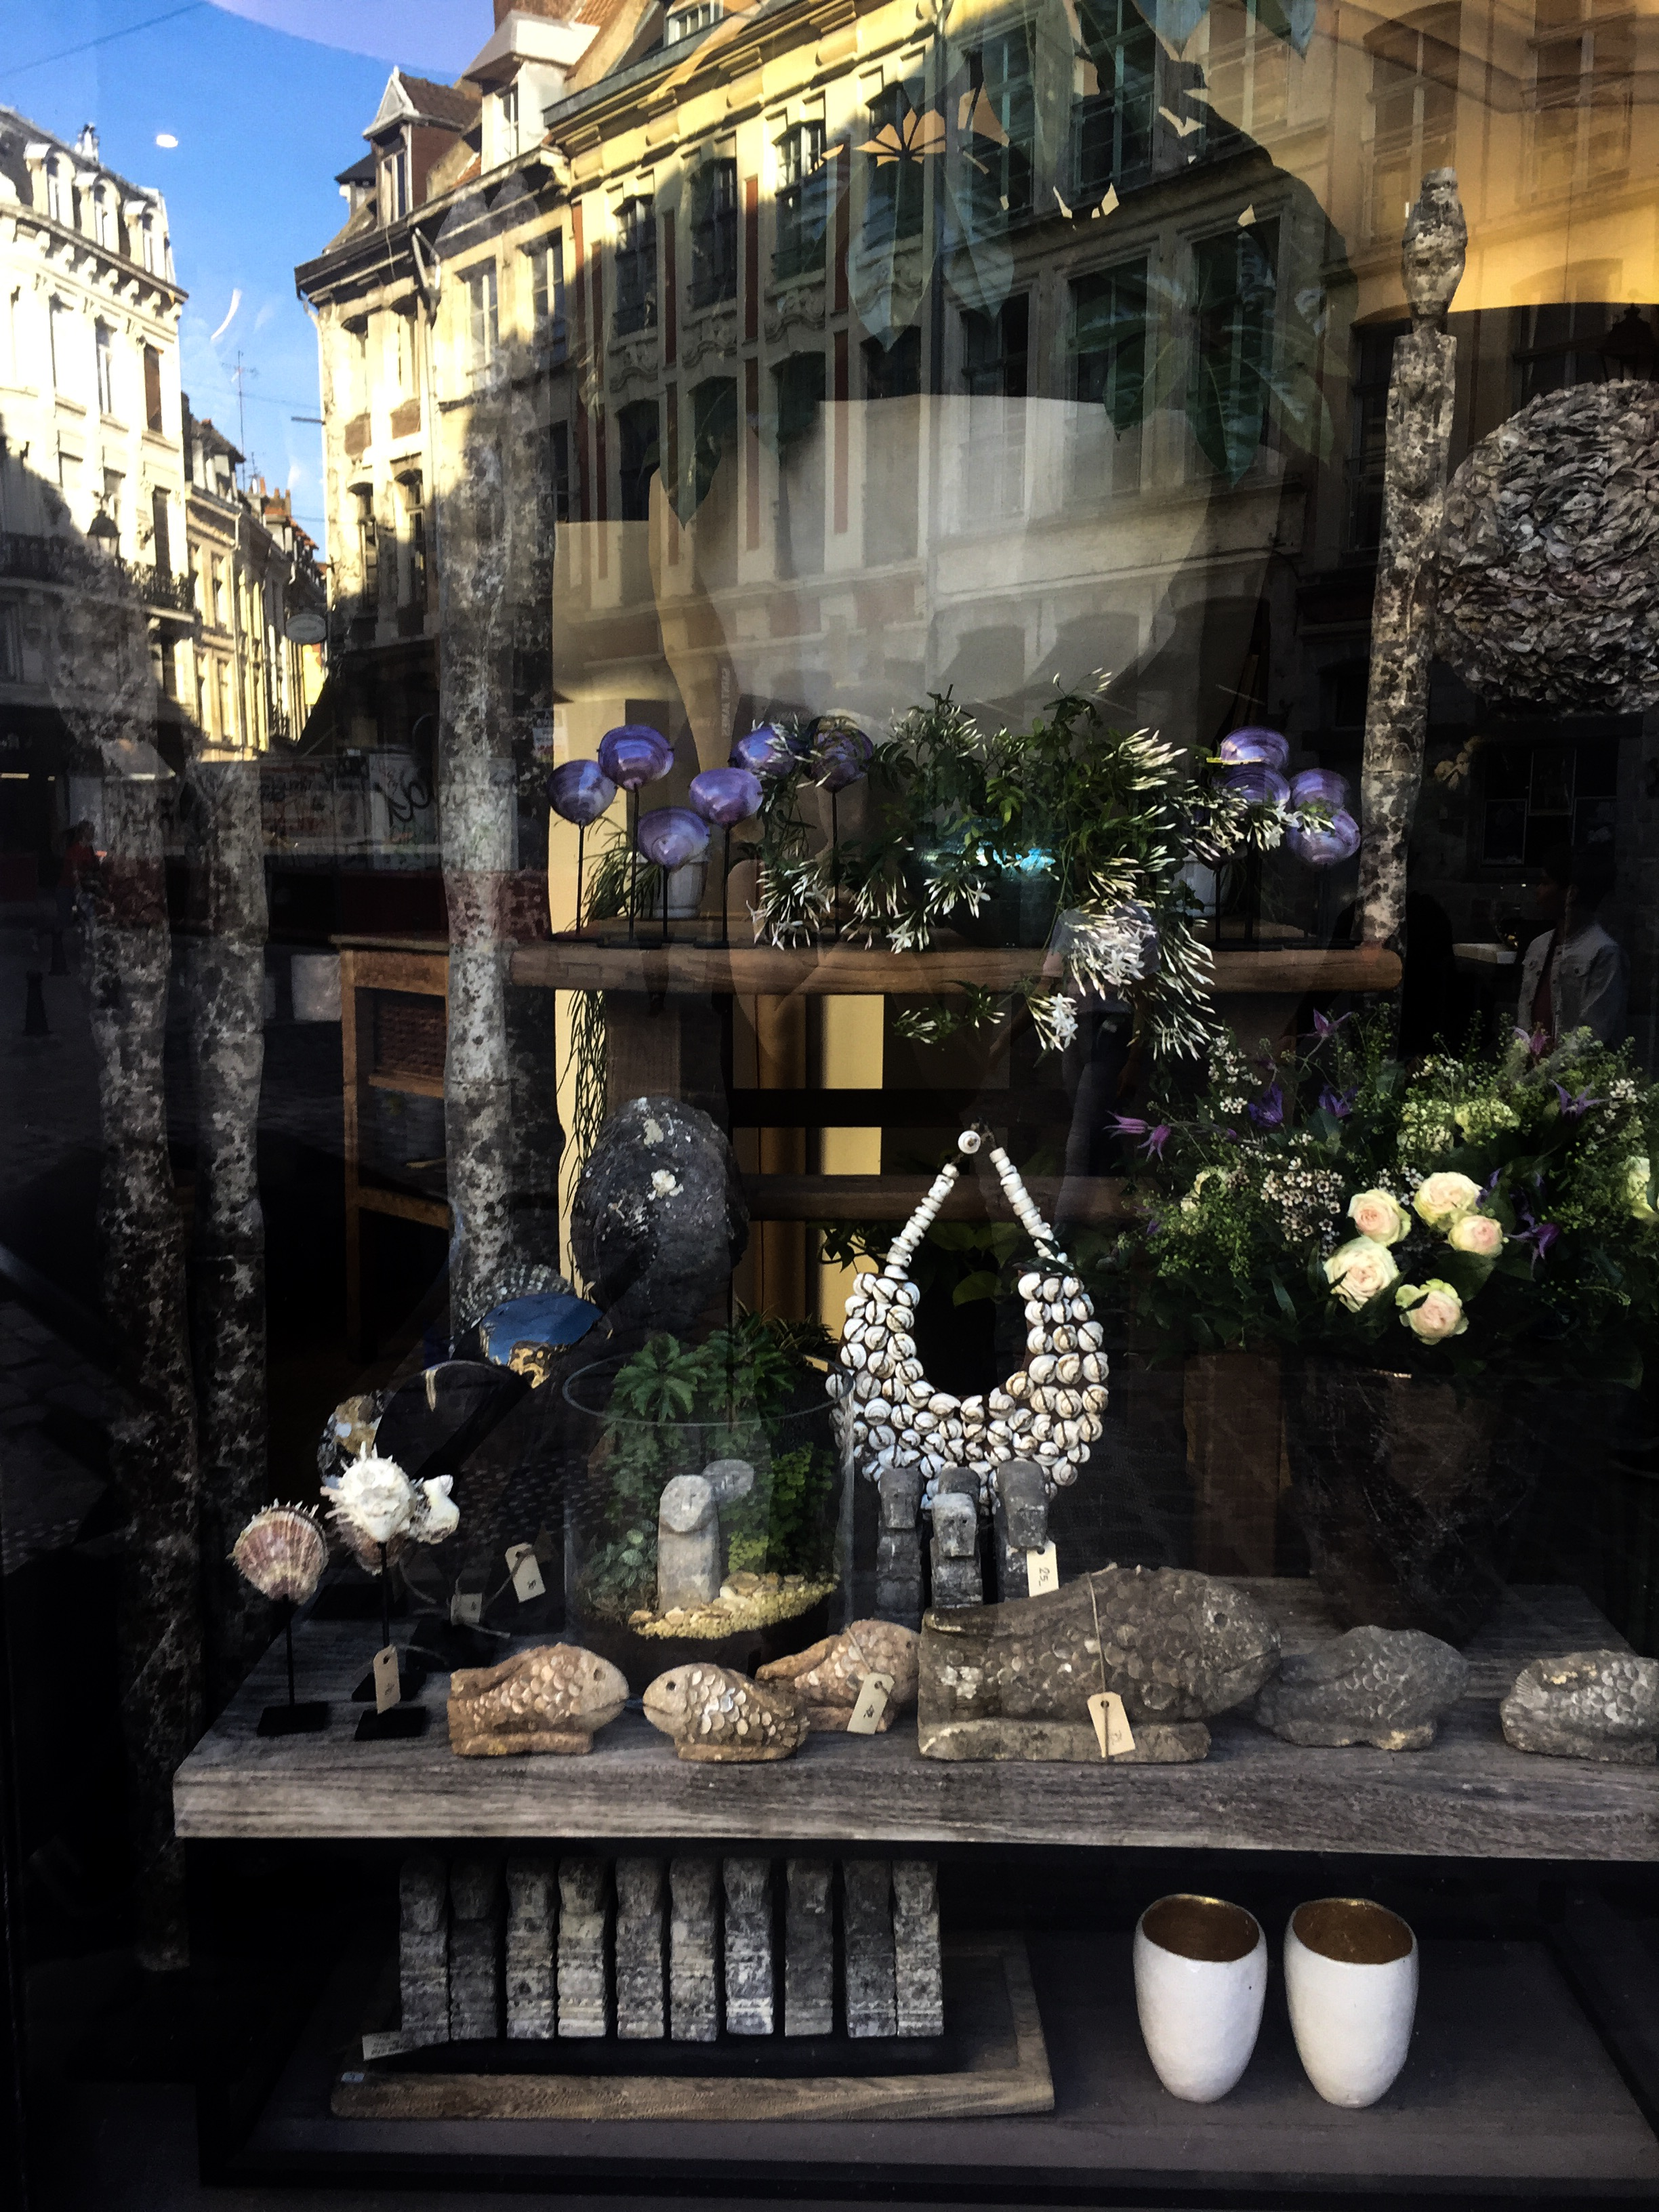 Green - This isn't so much a decoration shop but a beautiful florist that also provides items for your interiors. It is probably one of the most breath-taking florist in Lille. Just taking a peak throw the high windows will take you to another world. Amongst the plants you will find African necklaces made of beads and bobbles covered in seashells carefully displayed under bell-glasses:Although the shop owner isn't particularly engaging, the shop is well worth a visit.